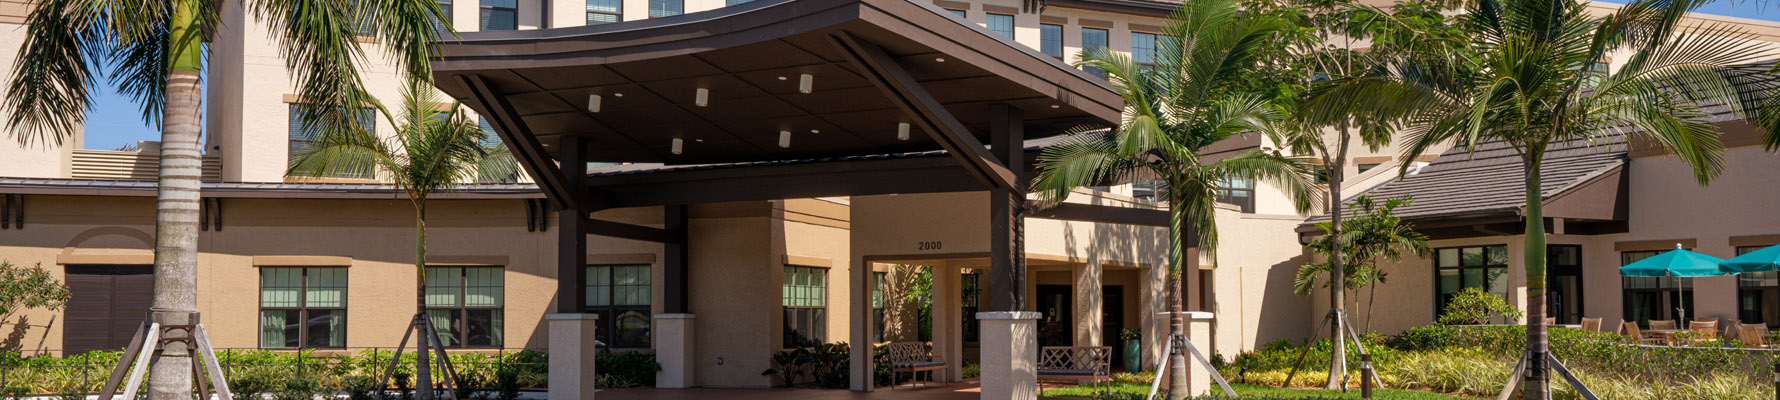 Independent Living in Delray Beach FL Abbey Delray